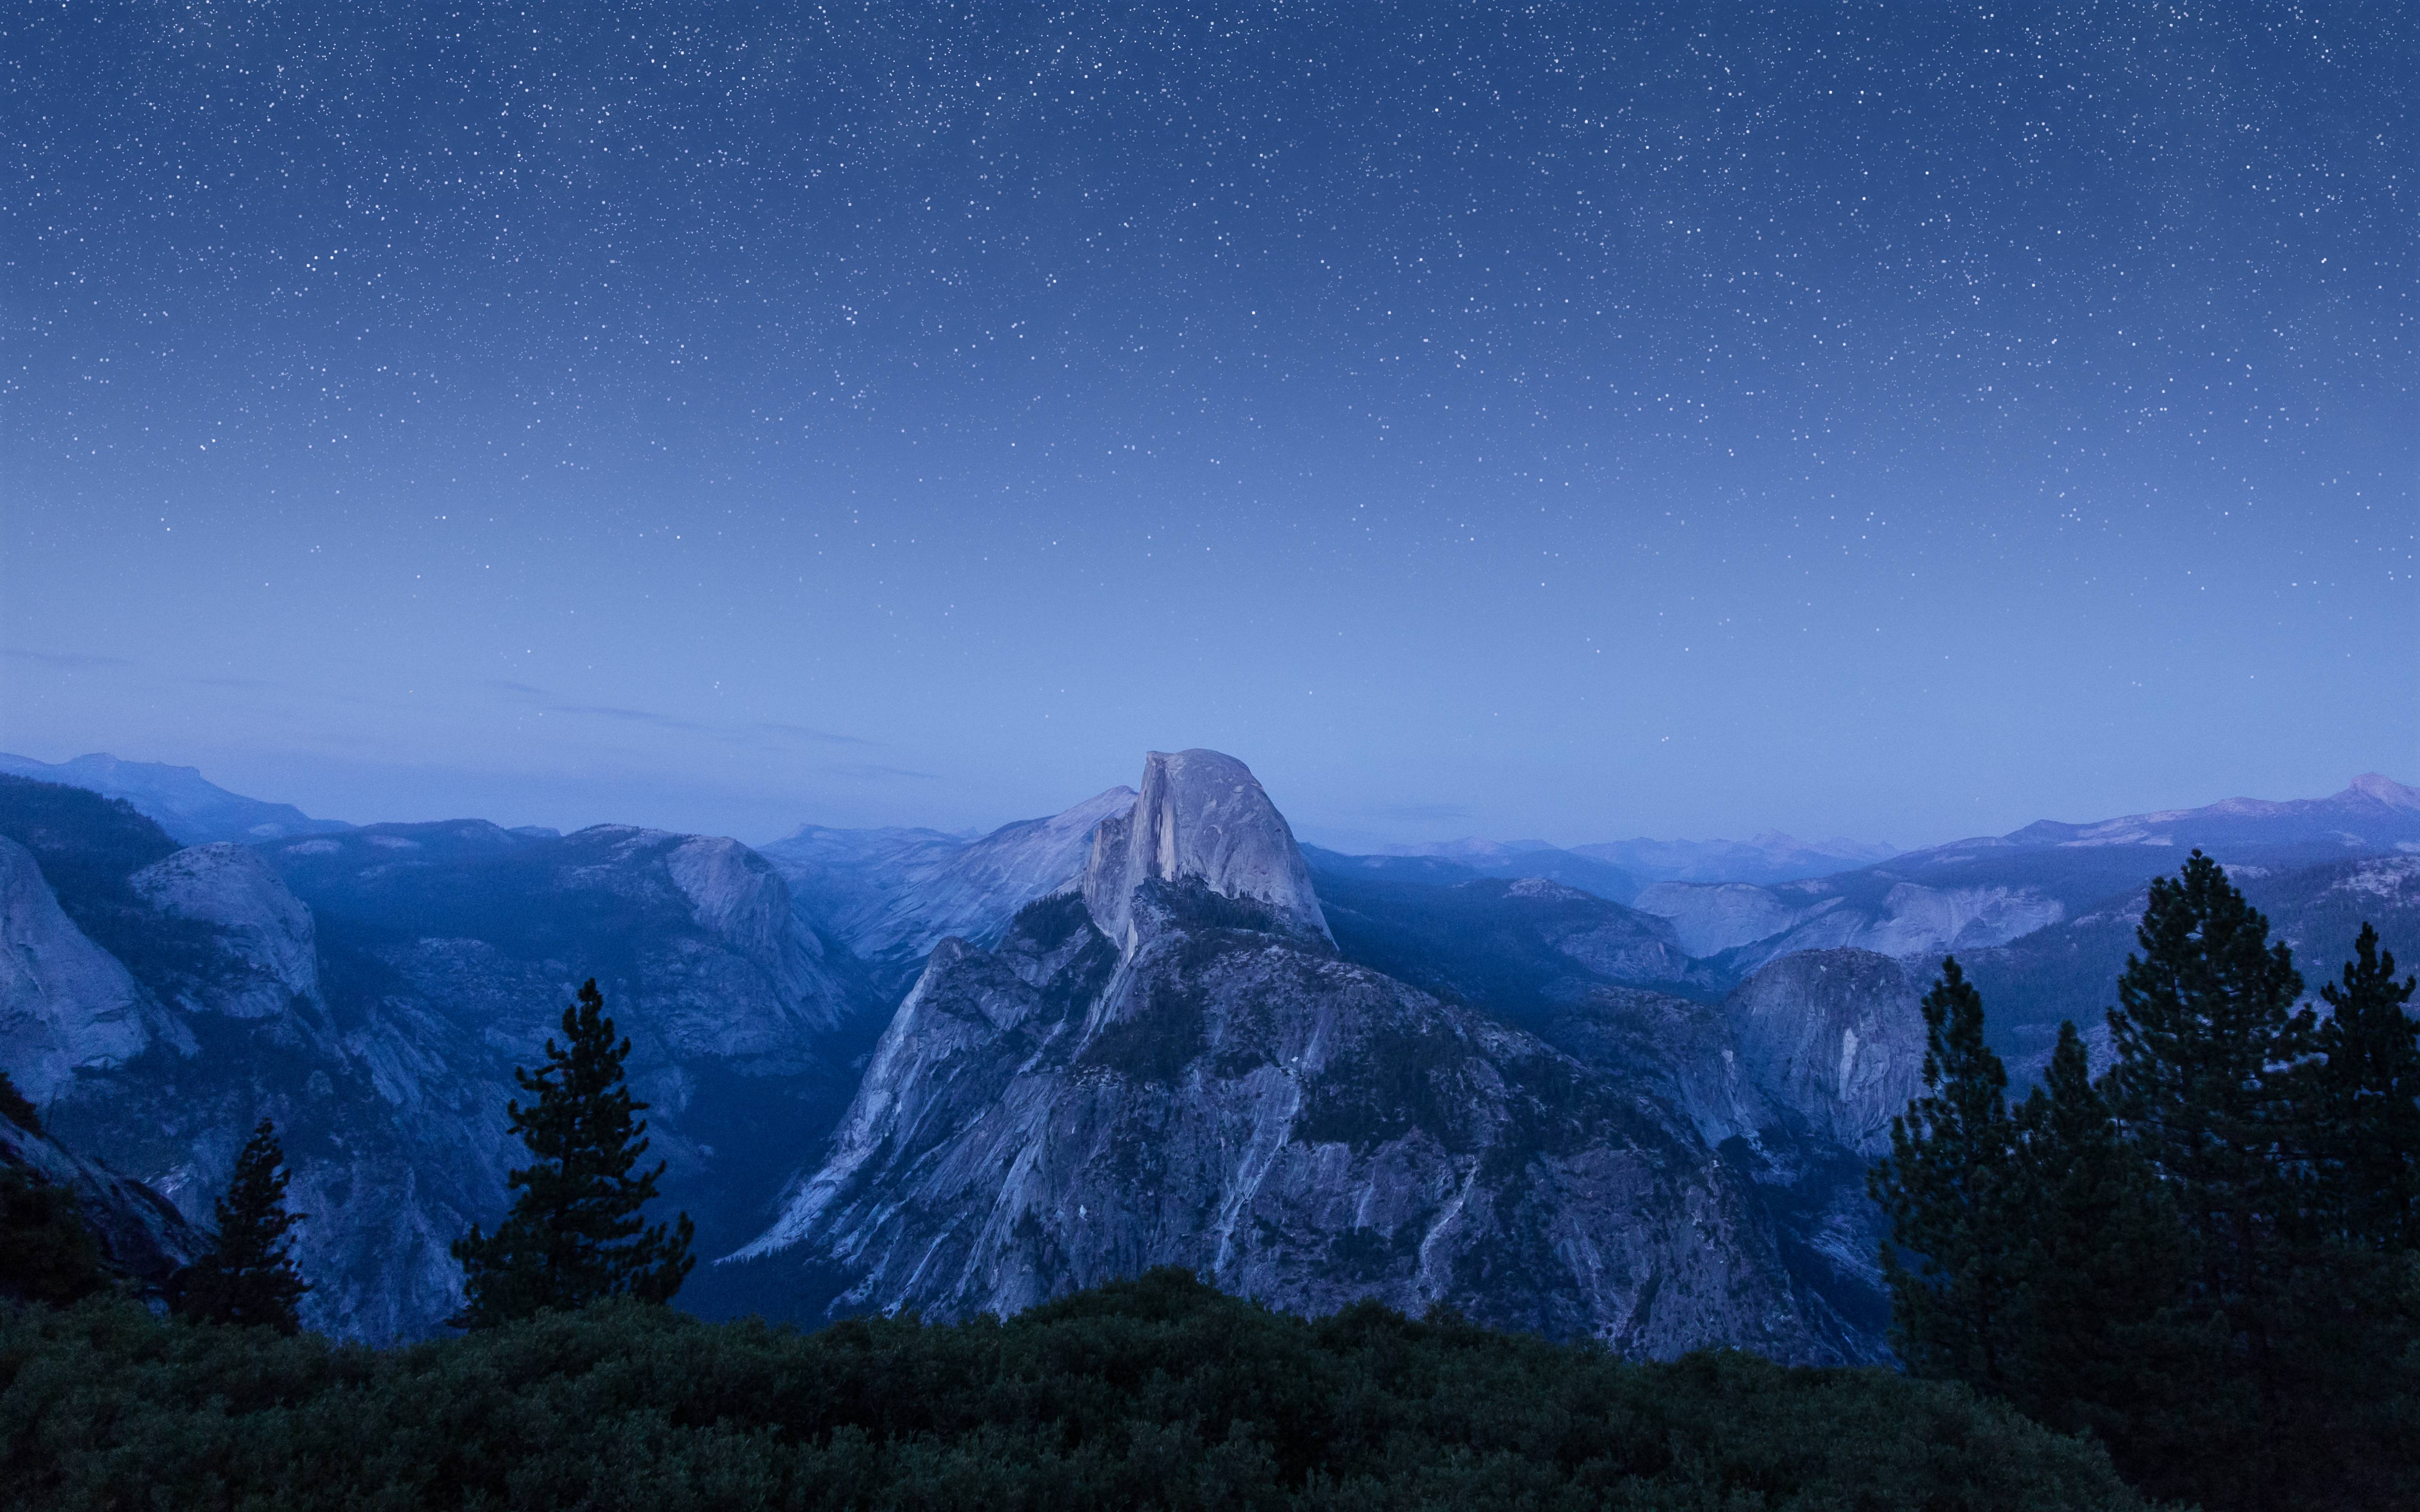 How to get the stunning new OS X El Capitan Wallpaper 5120x3200